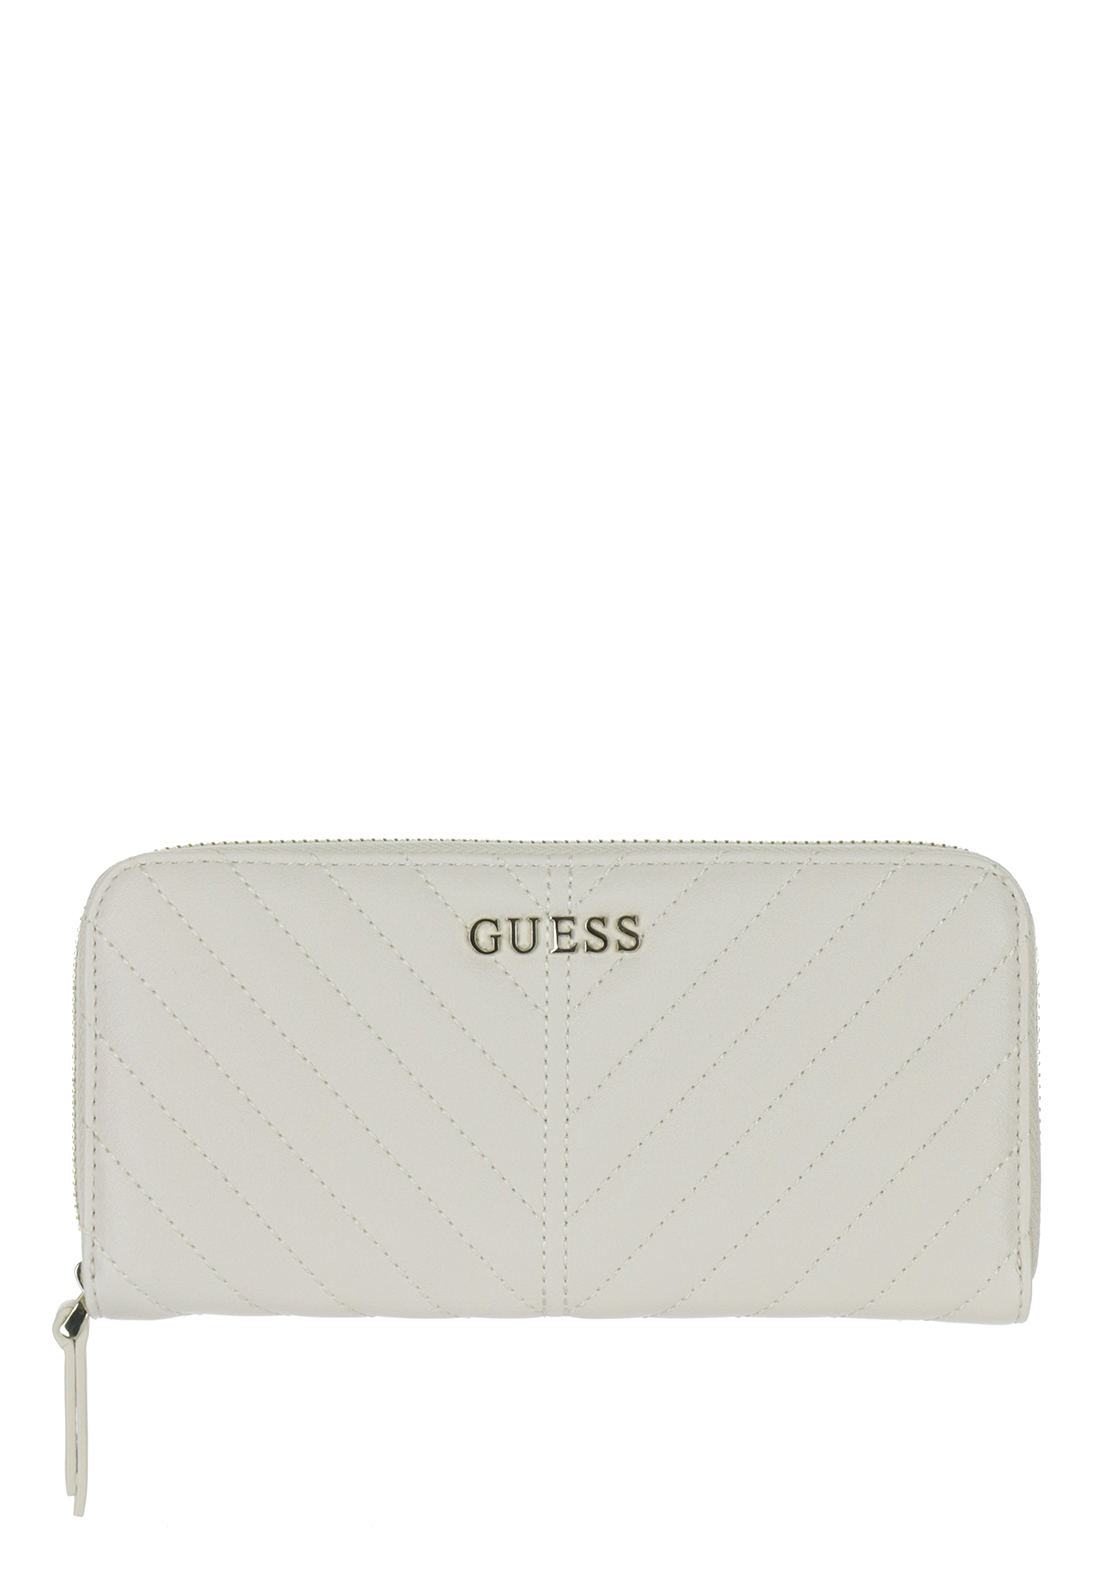 Guess Addison Quilted Large Zip around Purse, Ivory